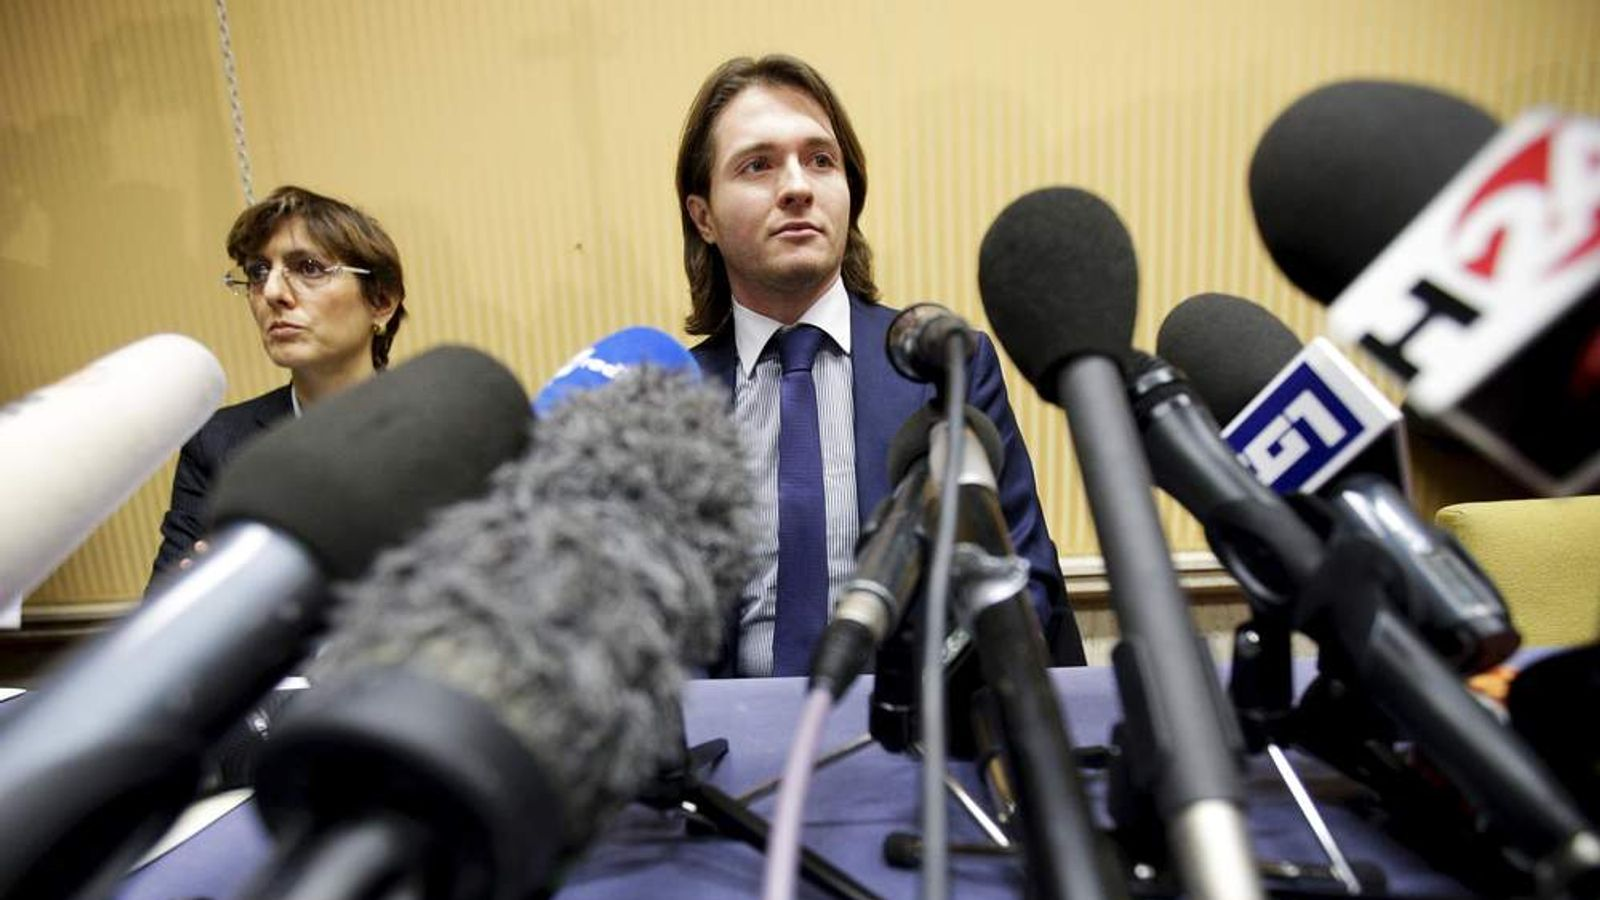 Sollecito Looks on next to his lawyer Bongiorno during a news conference in Rome